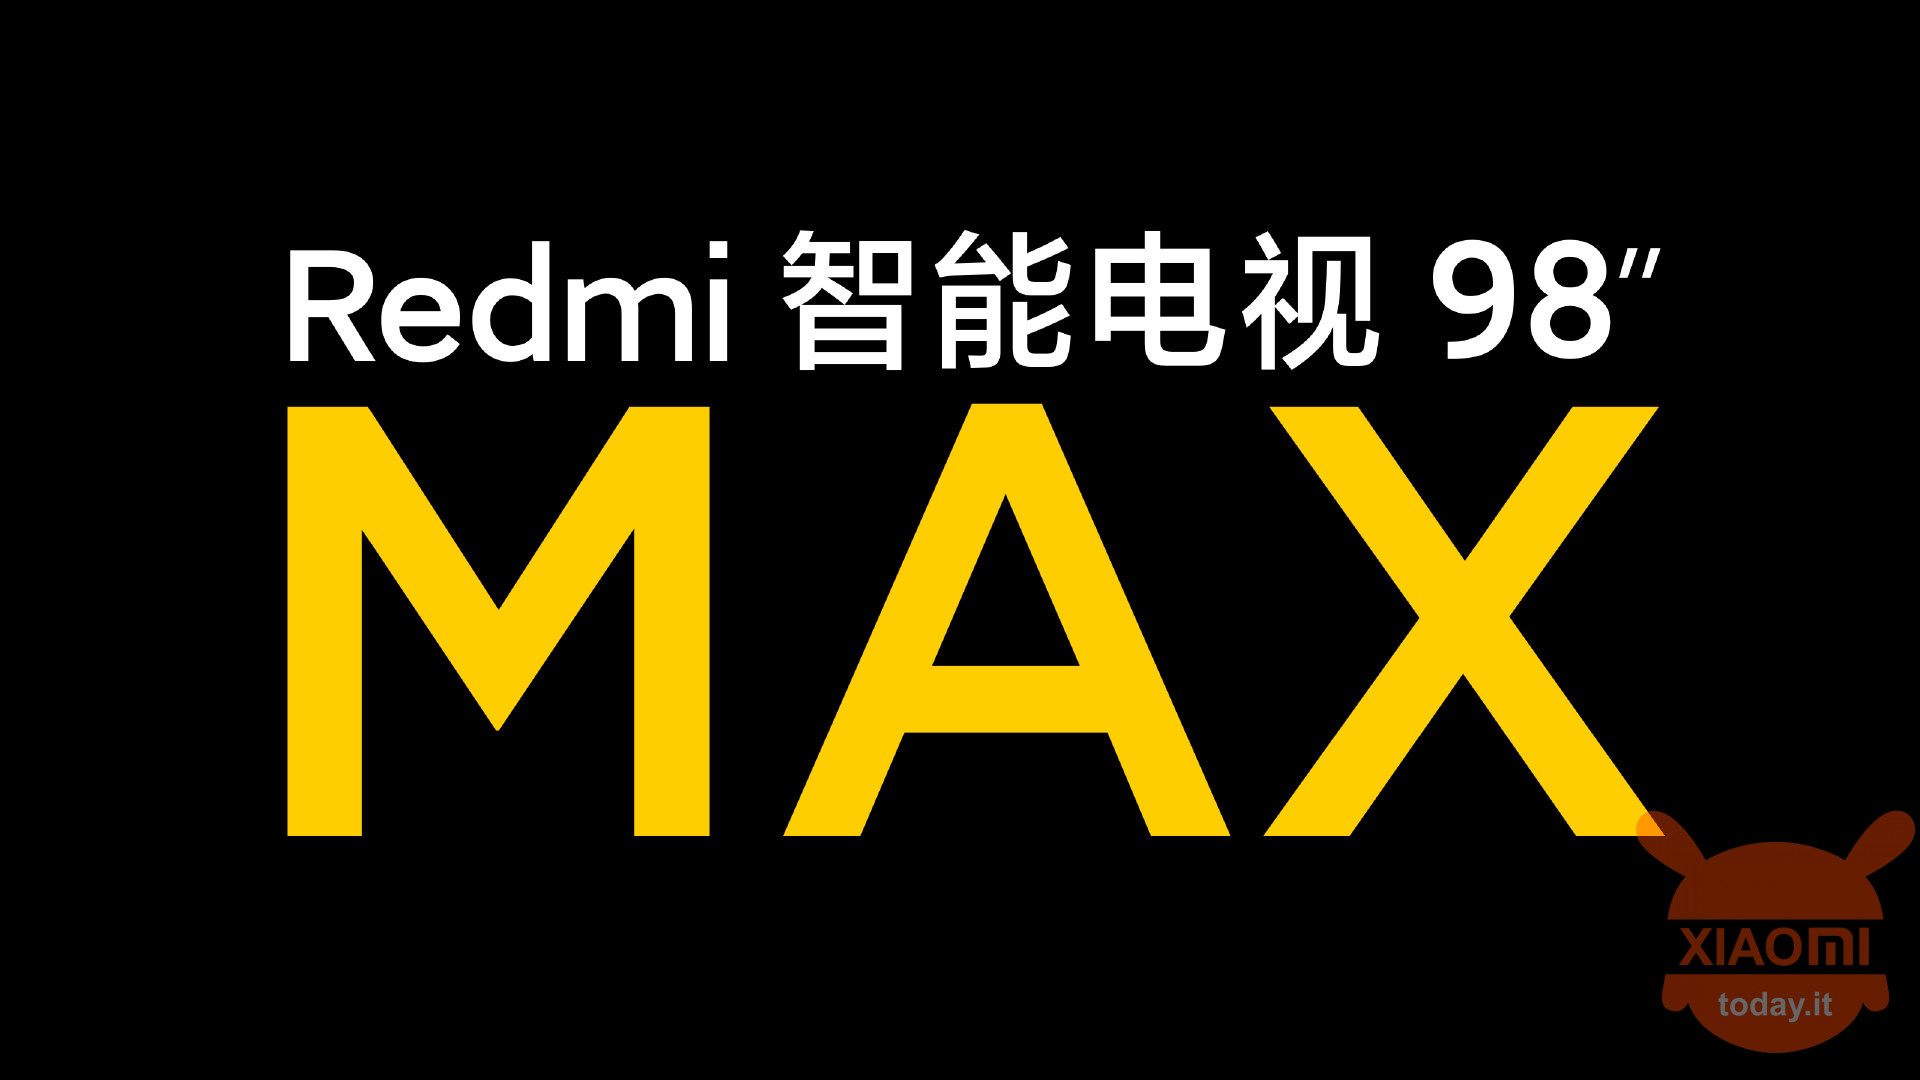 redmi tv max 98 ""